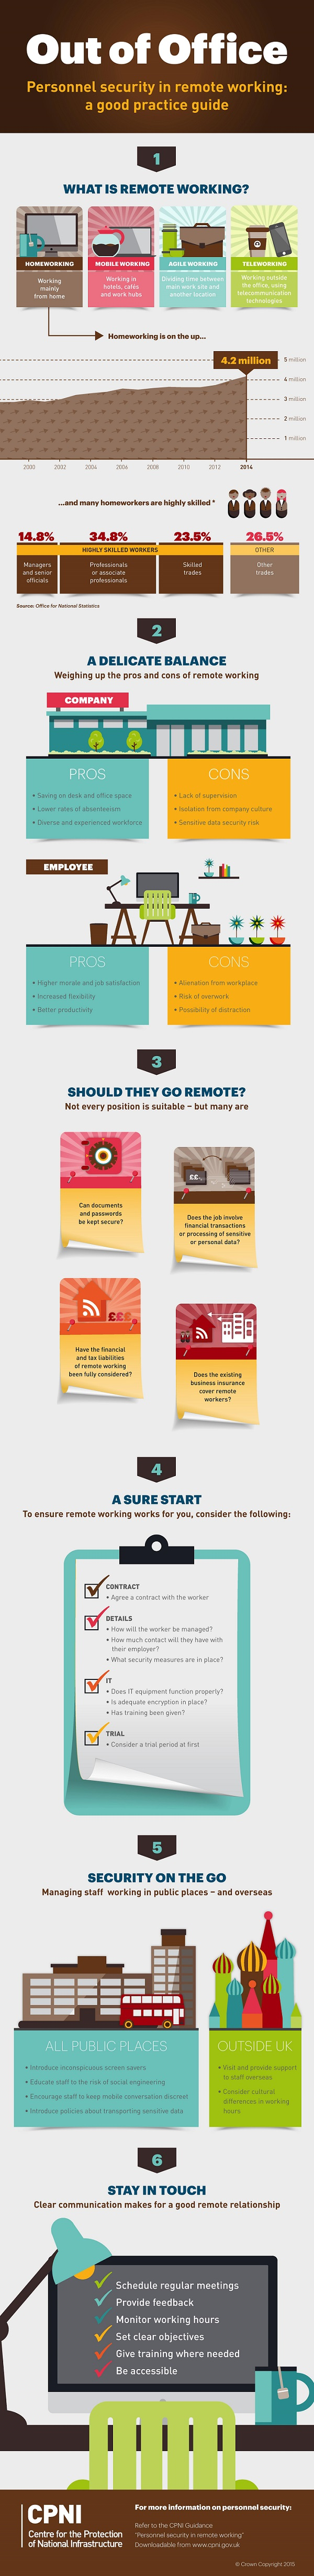 09-managing-remote-working-infographic-page-001